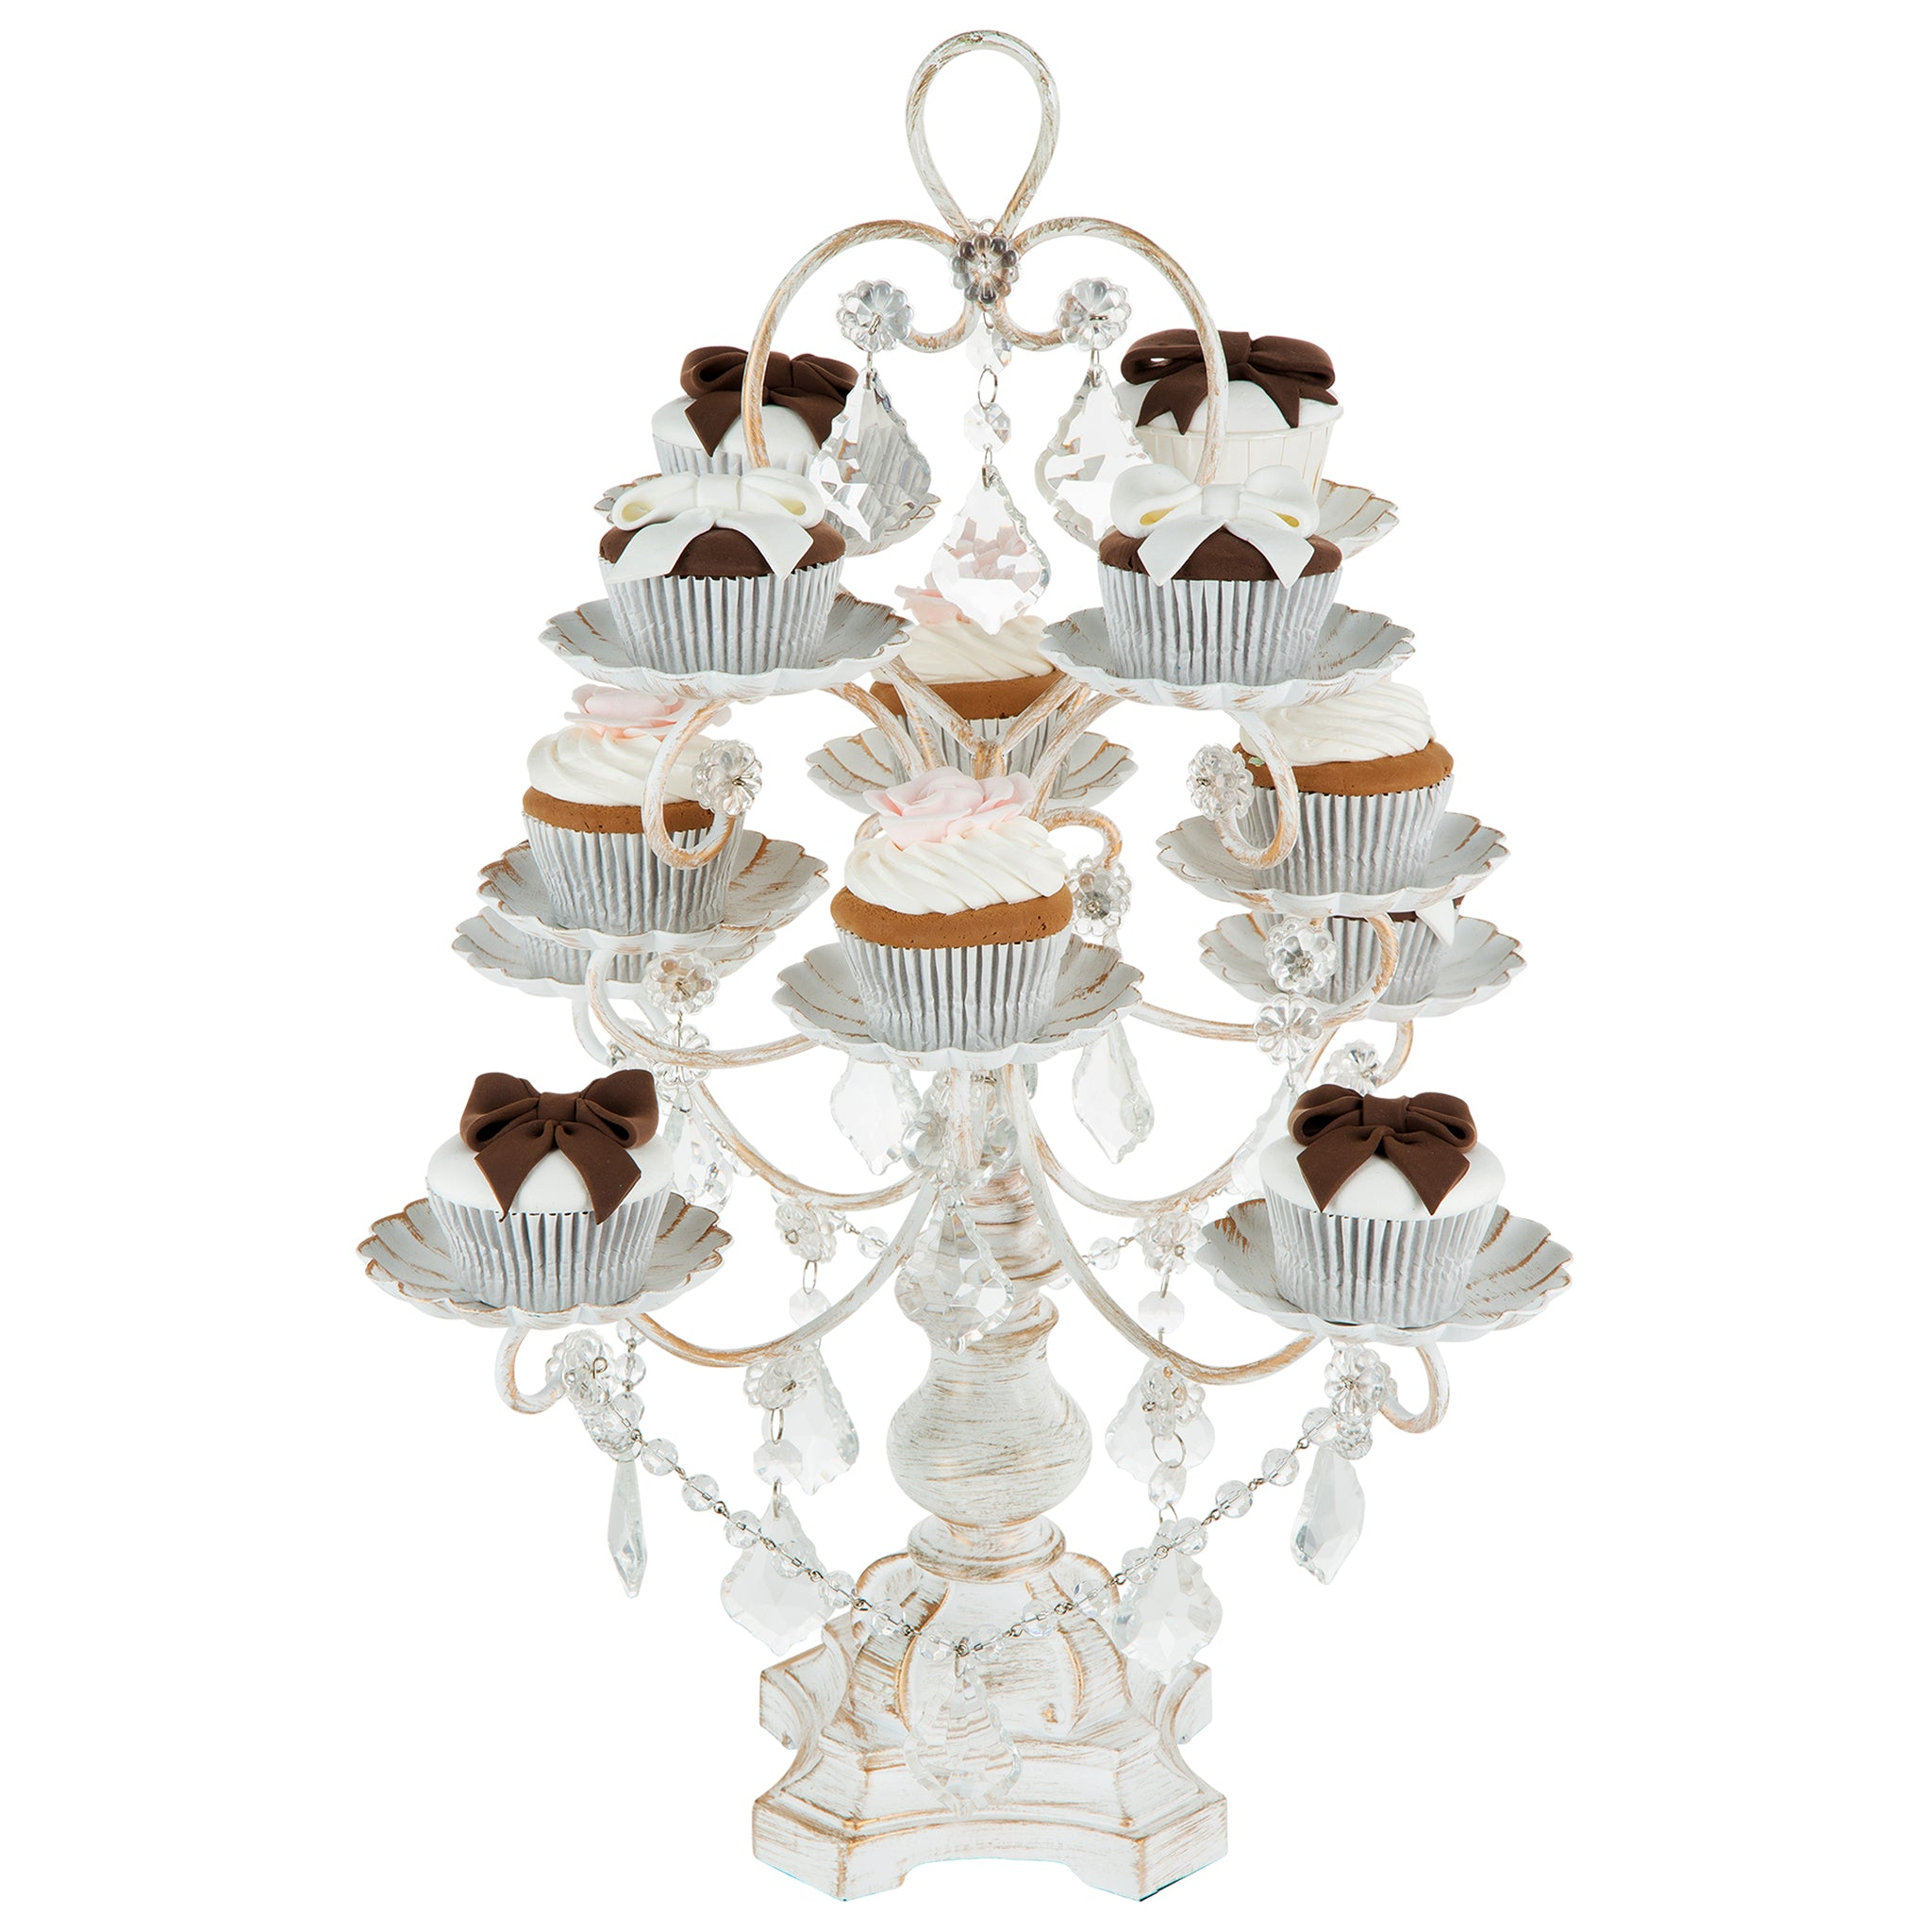 Amalfi Decor 12-Piece Vintage Crystal-Draped Cupcake Stand (Whitewashed) | Stainless Steel Frame